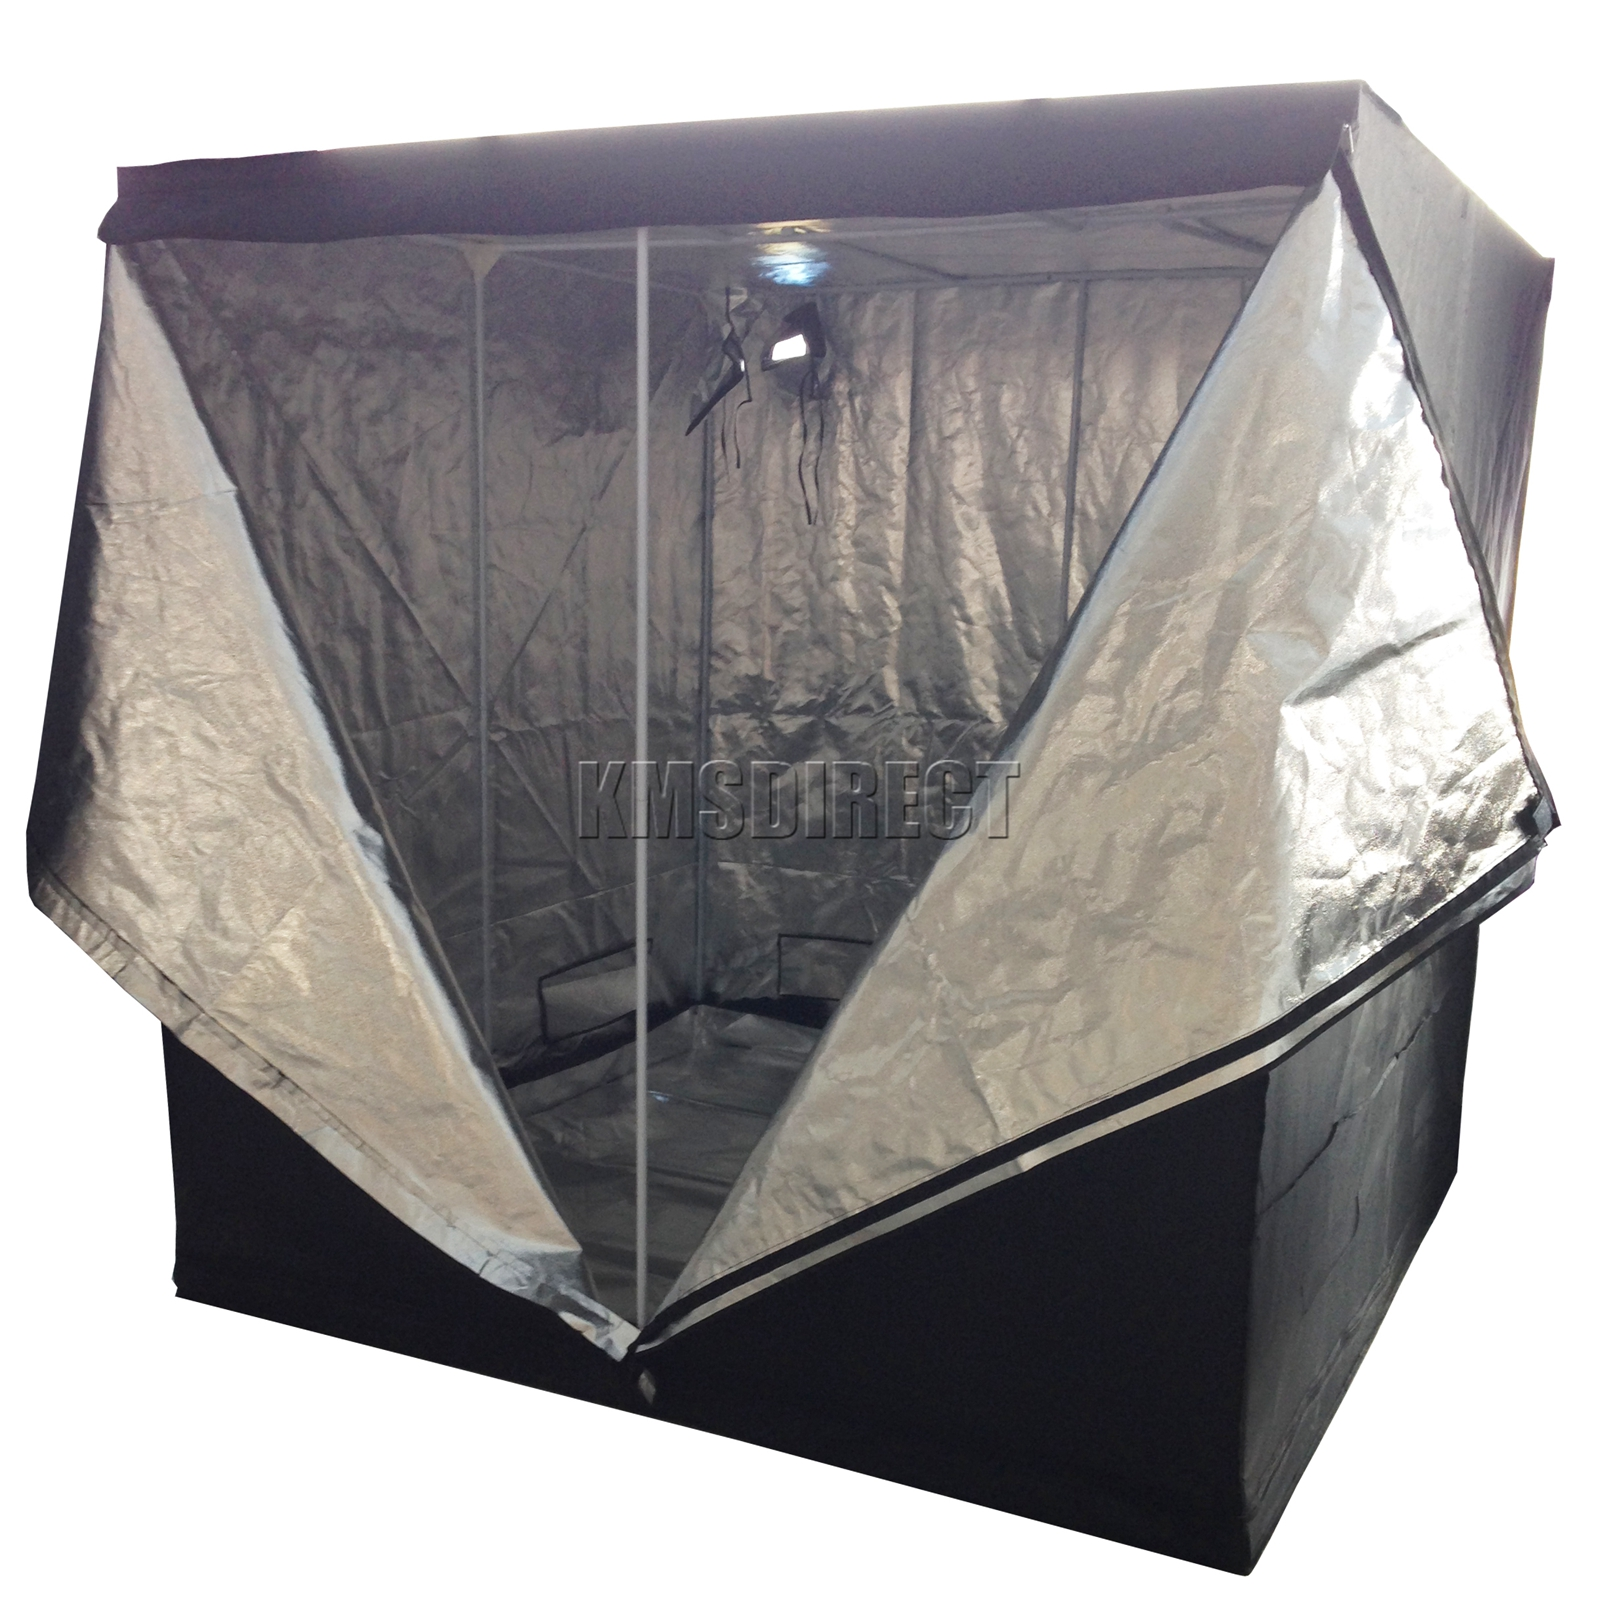 New Indoor Grow Tent Box Silver Mylar Lined Bud Dark Green